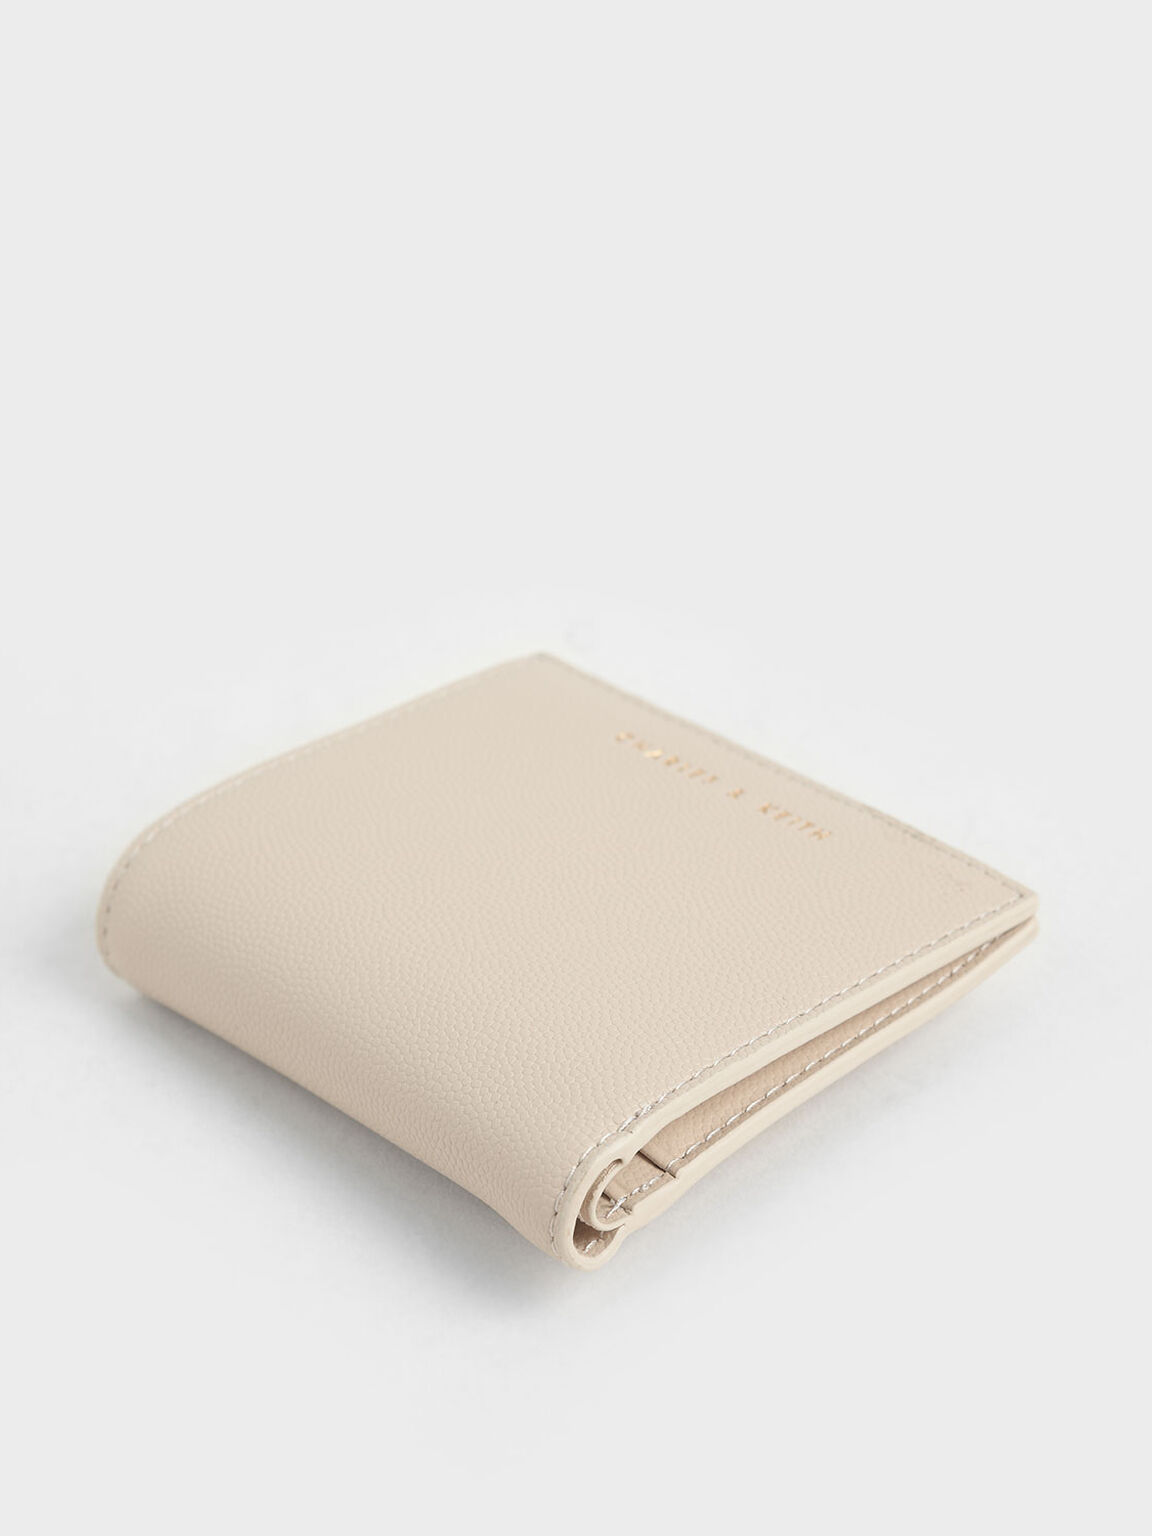 Square Small Wallet, Ivory, hi-res